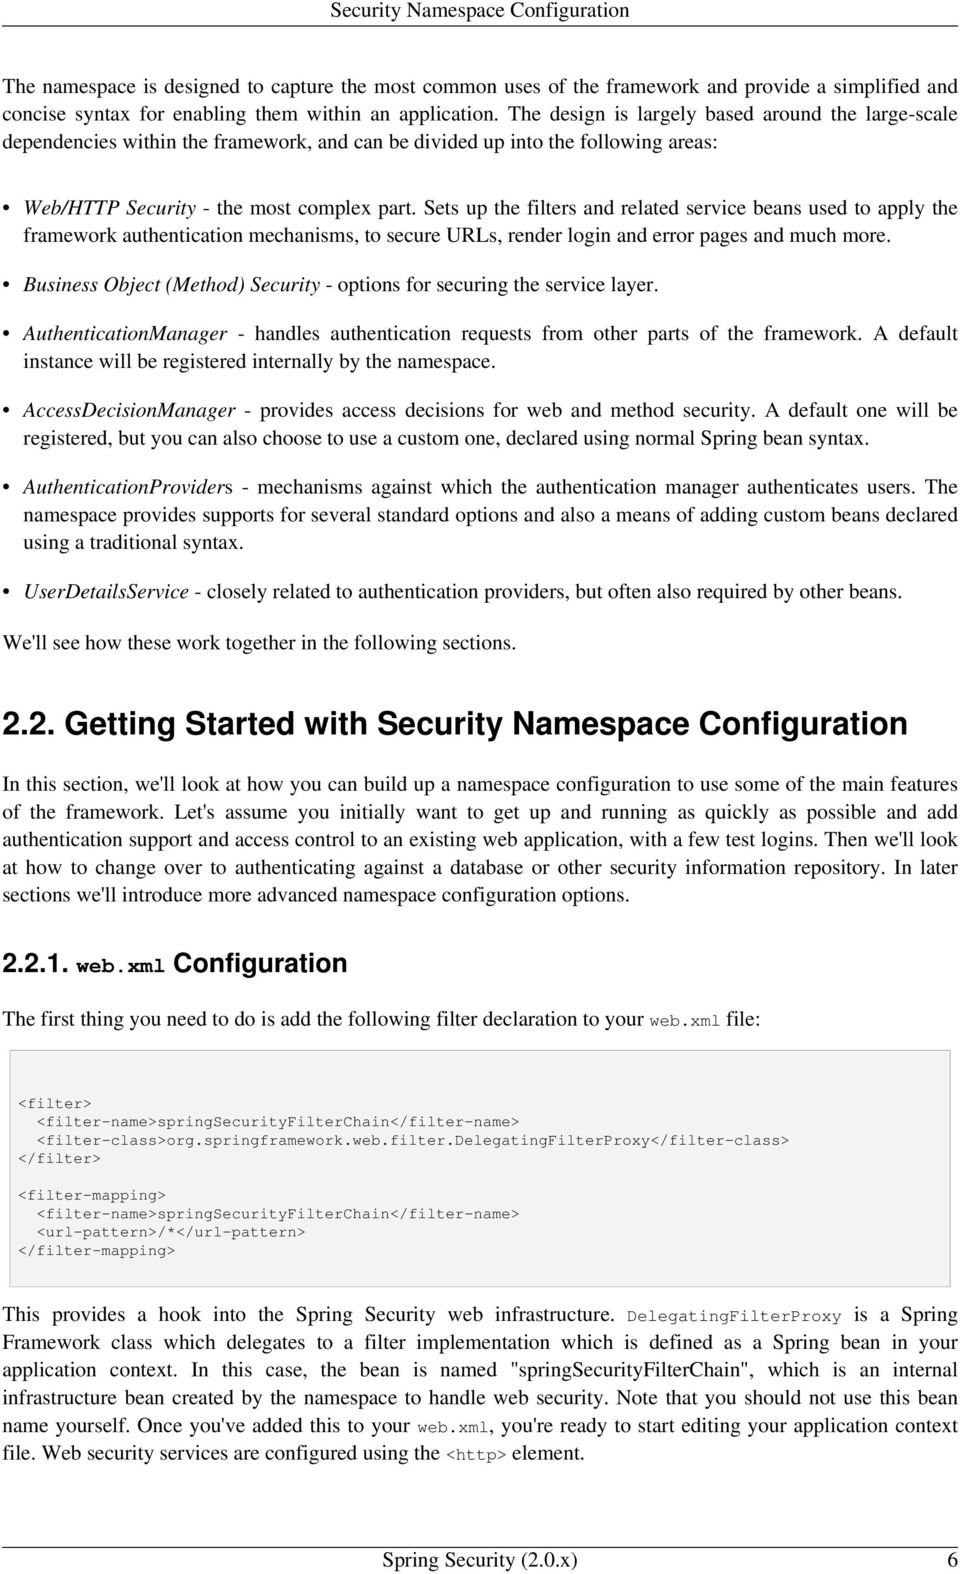 Spring Security  Reference Documentation  2 0 x  Copyright - PDF